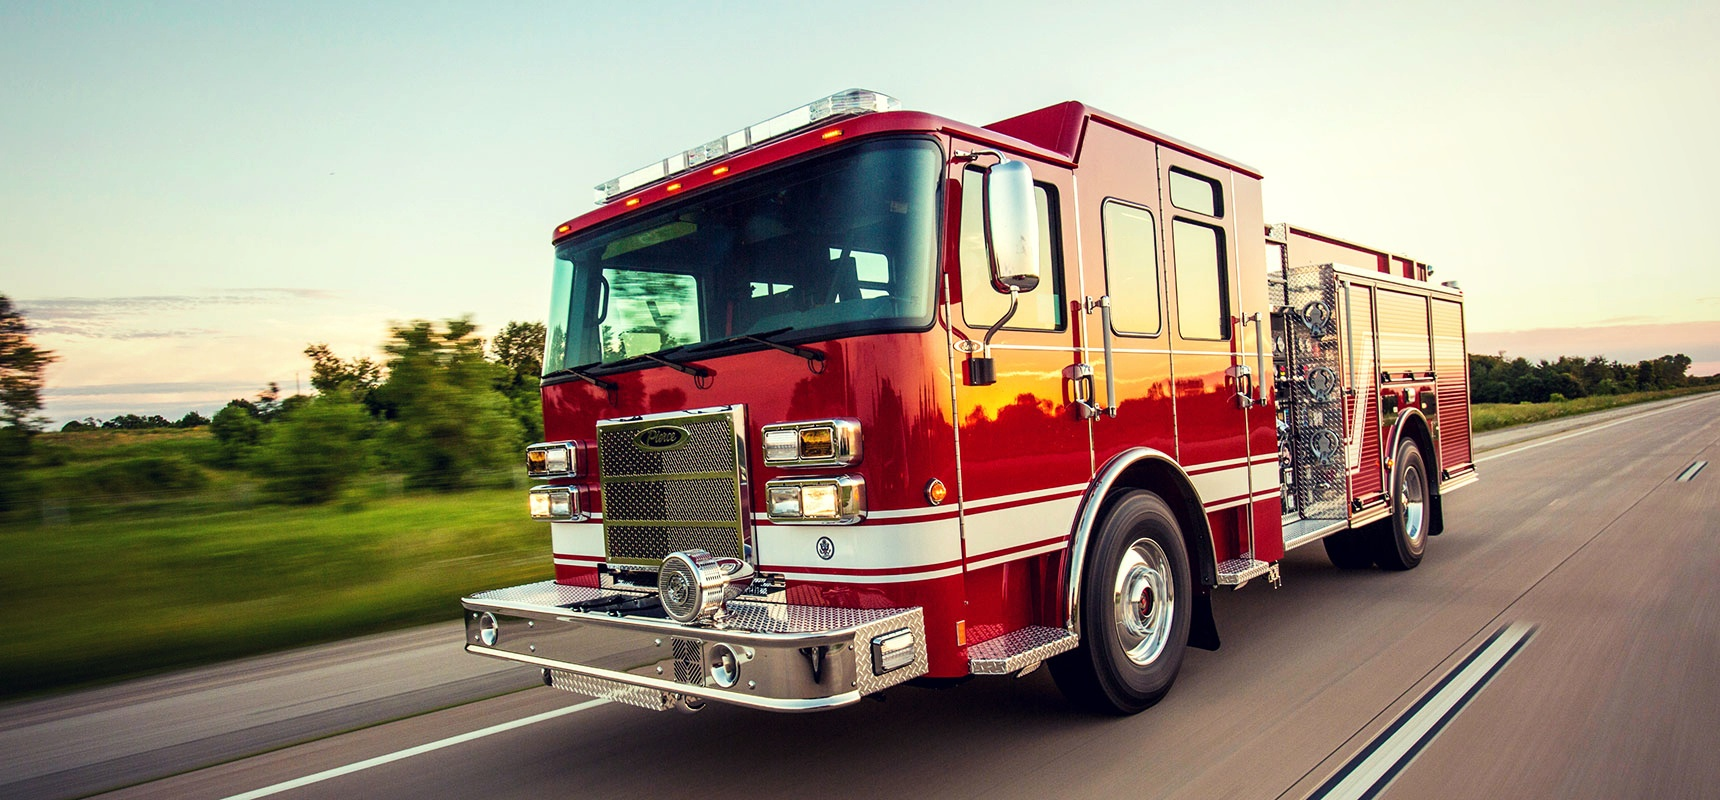 Pierce-Saber-Pumper-Powered-by-Ford-Power-Train-Purchased-by-the-Lafayette-County_Header.jpg